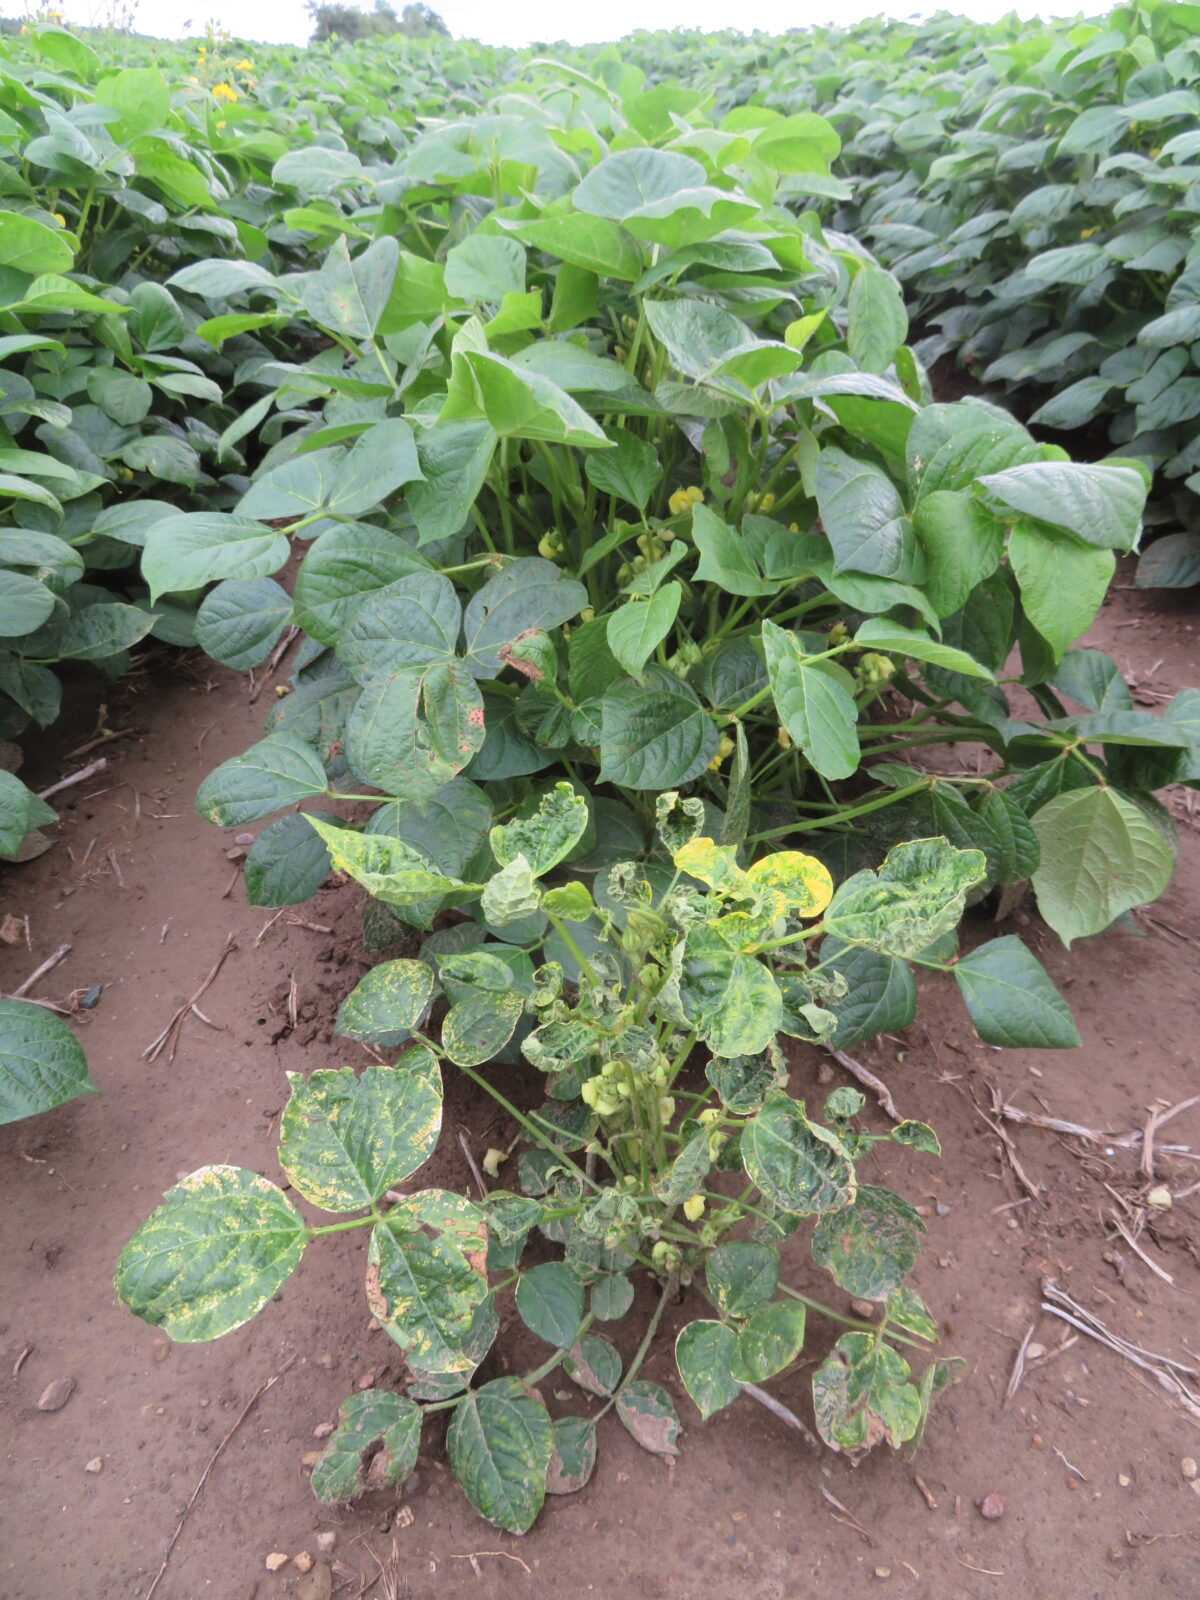 A photo of adzuki dry bean plants showing symptoms of alfalfa mosaic virus in which some of the leaves are dark green and yellow